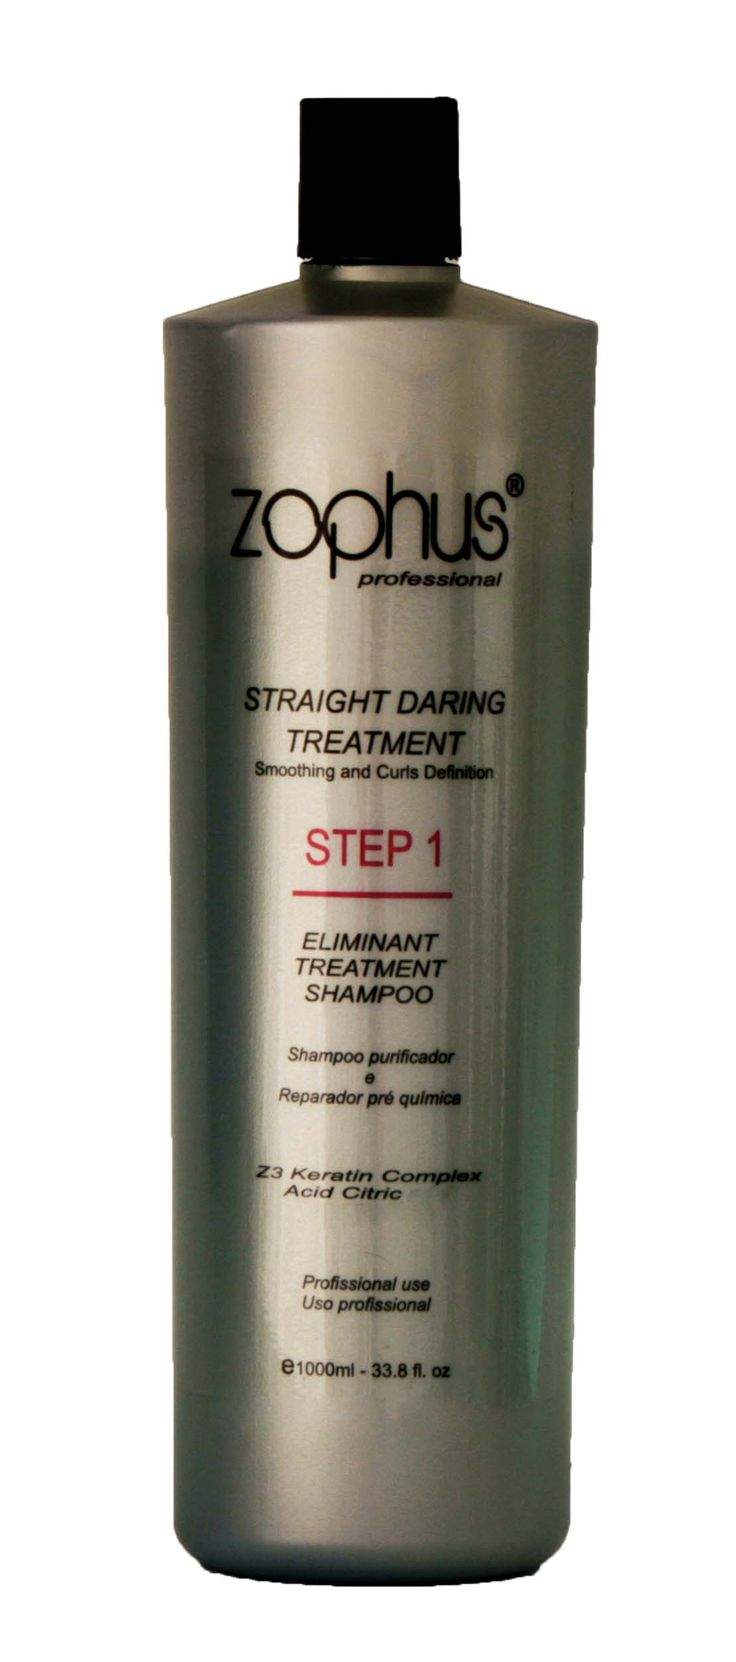 Eliminant Treatment Shampoo(Profissional Use) eliminates pollutants and purifies the hair fiber structure. The addition of Z3 keratin complex reconstructs sensitized parts of the strands , along with the essential oils, maintains the water content of strands. It has still violet pigment,wich guarantees the effect of silver to keep the strands the clearest blond,gray and platinum without changing the color. It can also be used after changning shape,staining and discoloration.